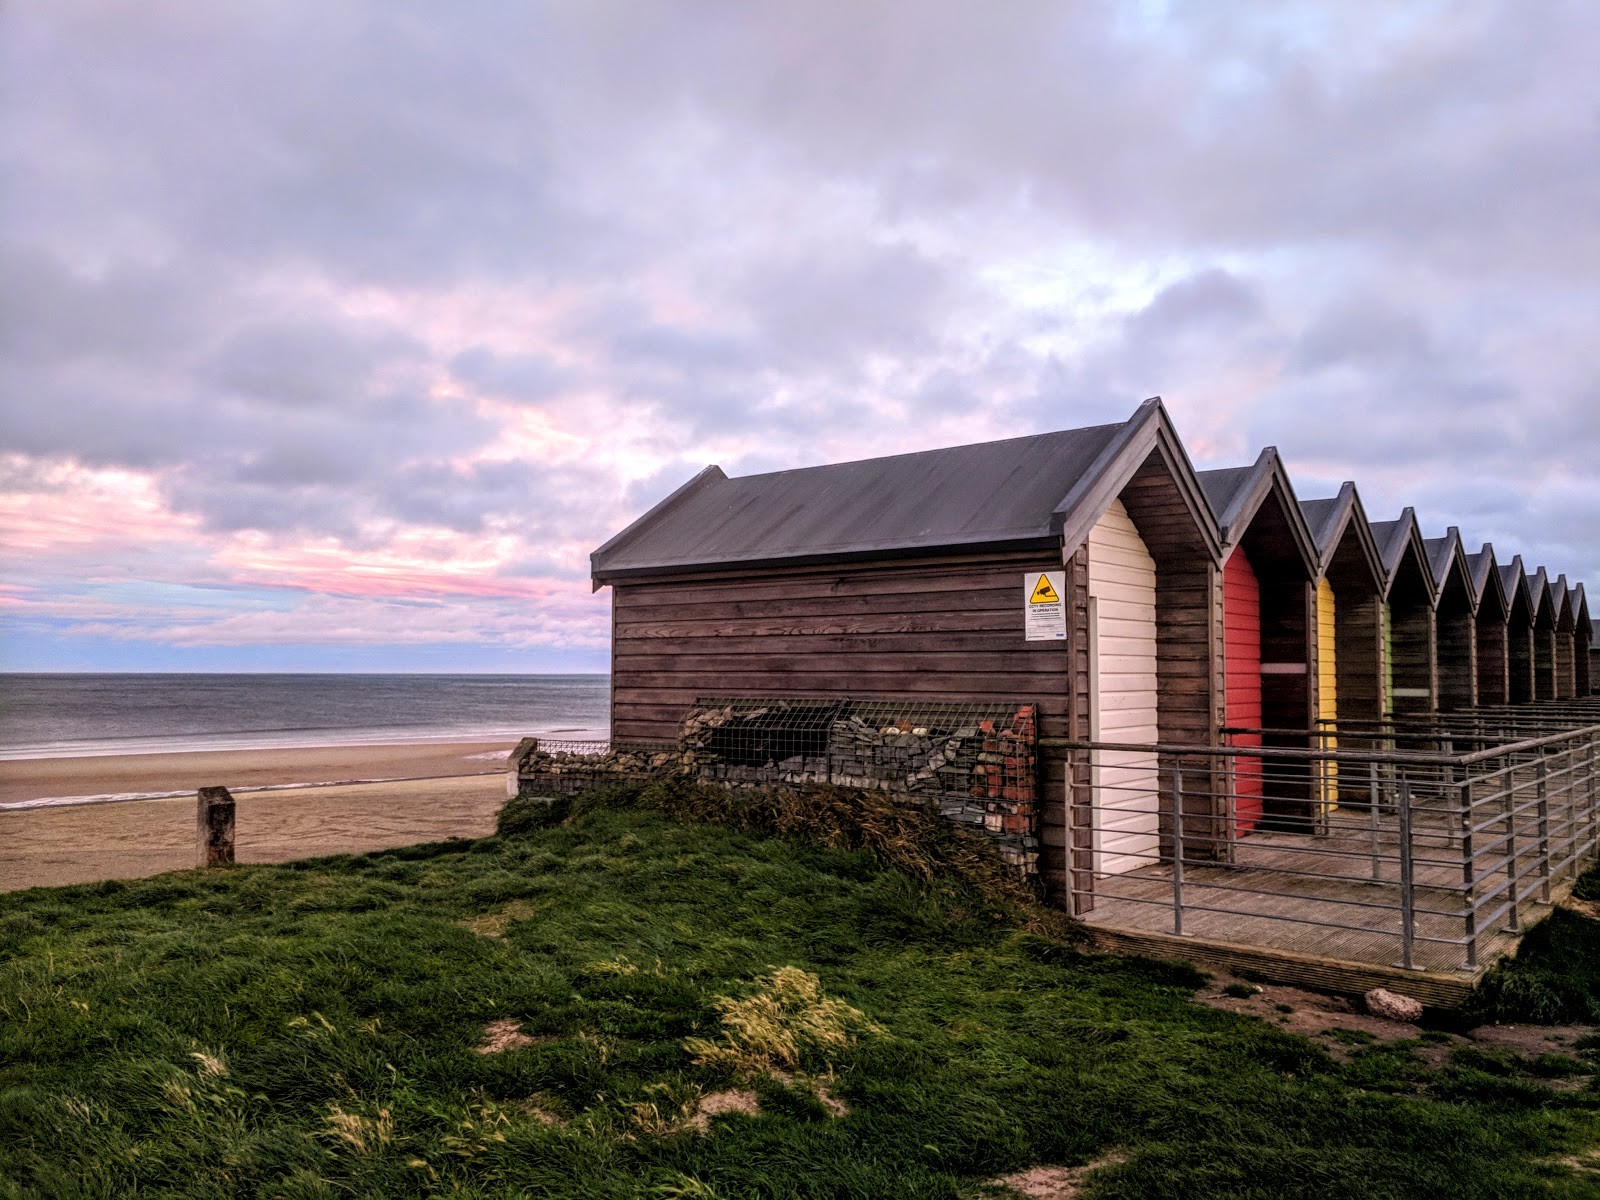 10 of the best family walks in North East England with a cafe and play park nearby - South Beach Blyth